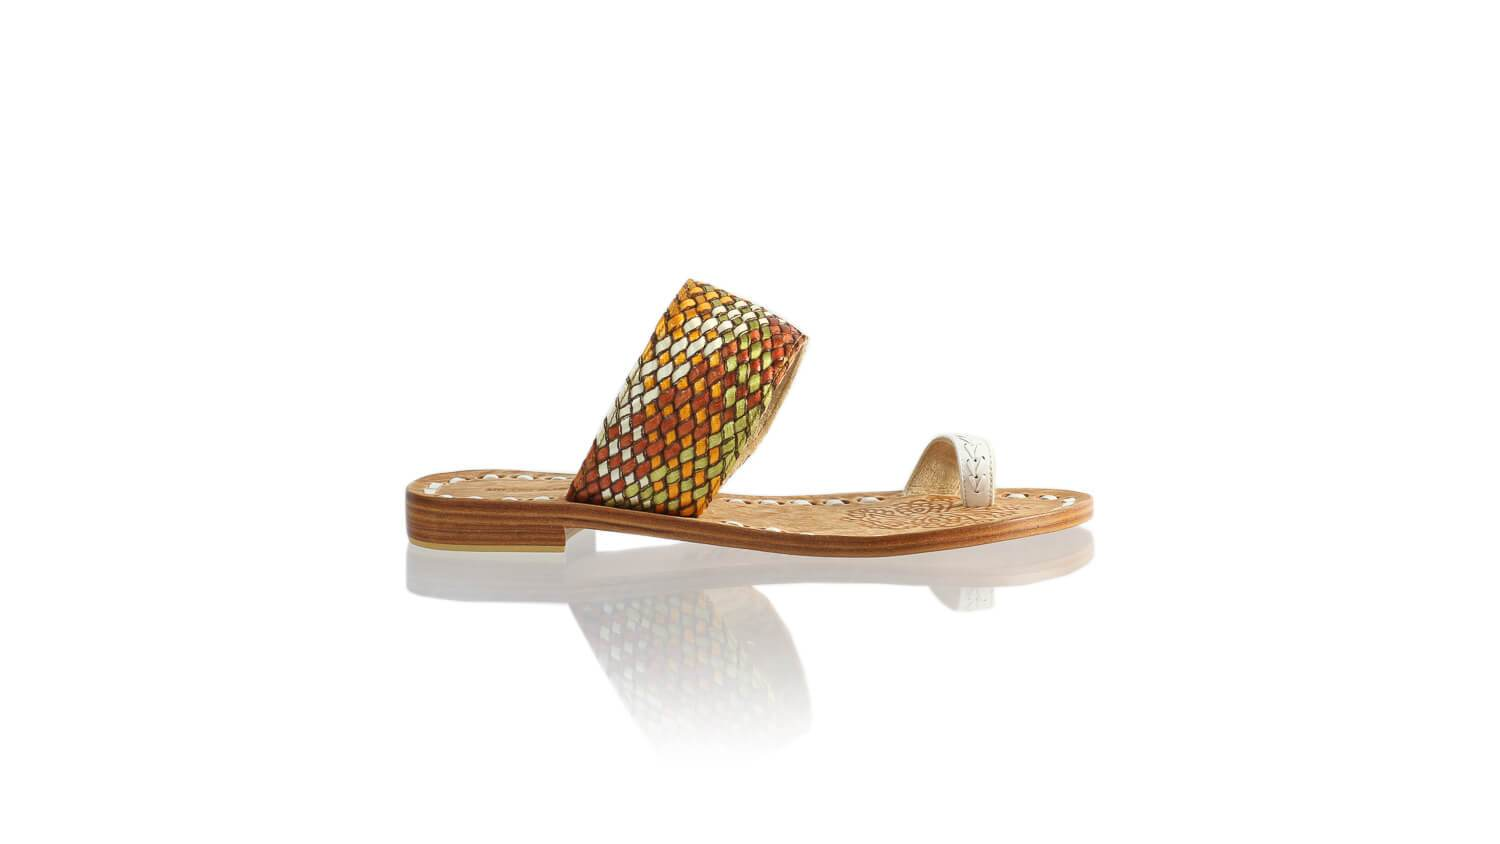 Leather-shoes-Arini 20mm Flat - White & Multicolor Ribbon-sandals flat-NILUH DJELANTIK-NILUH DJELANTIK